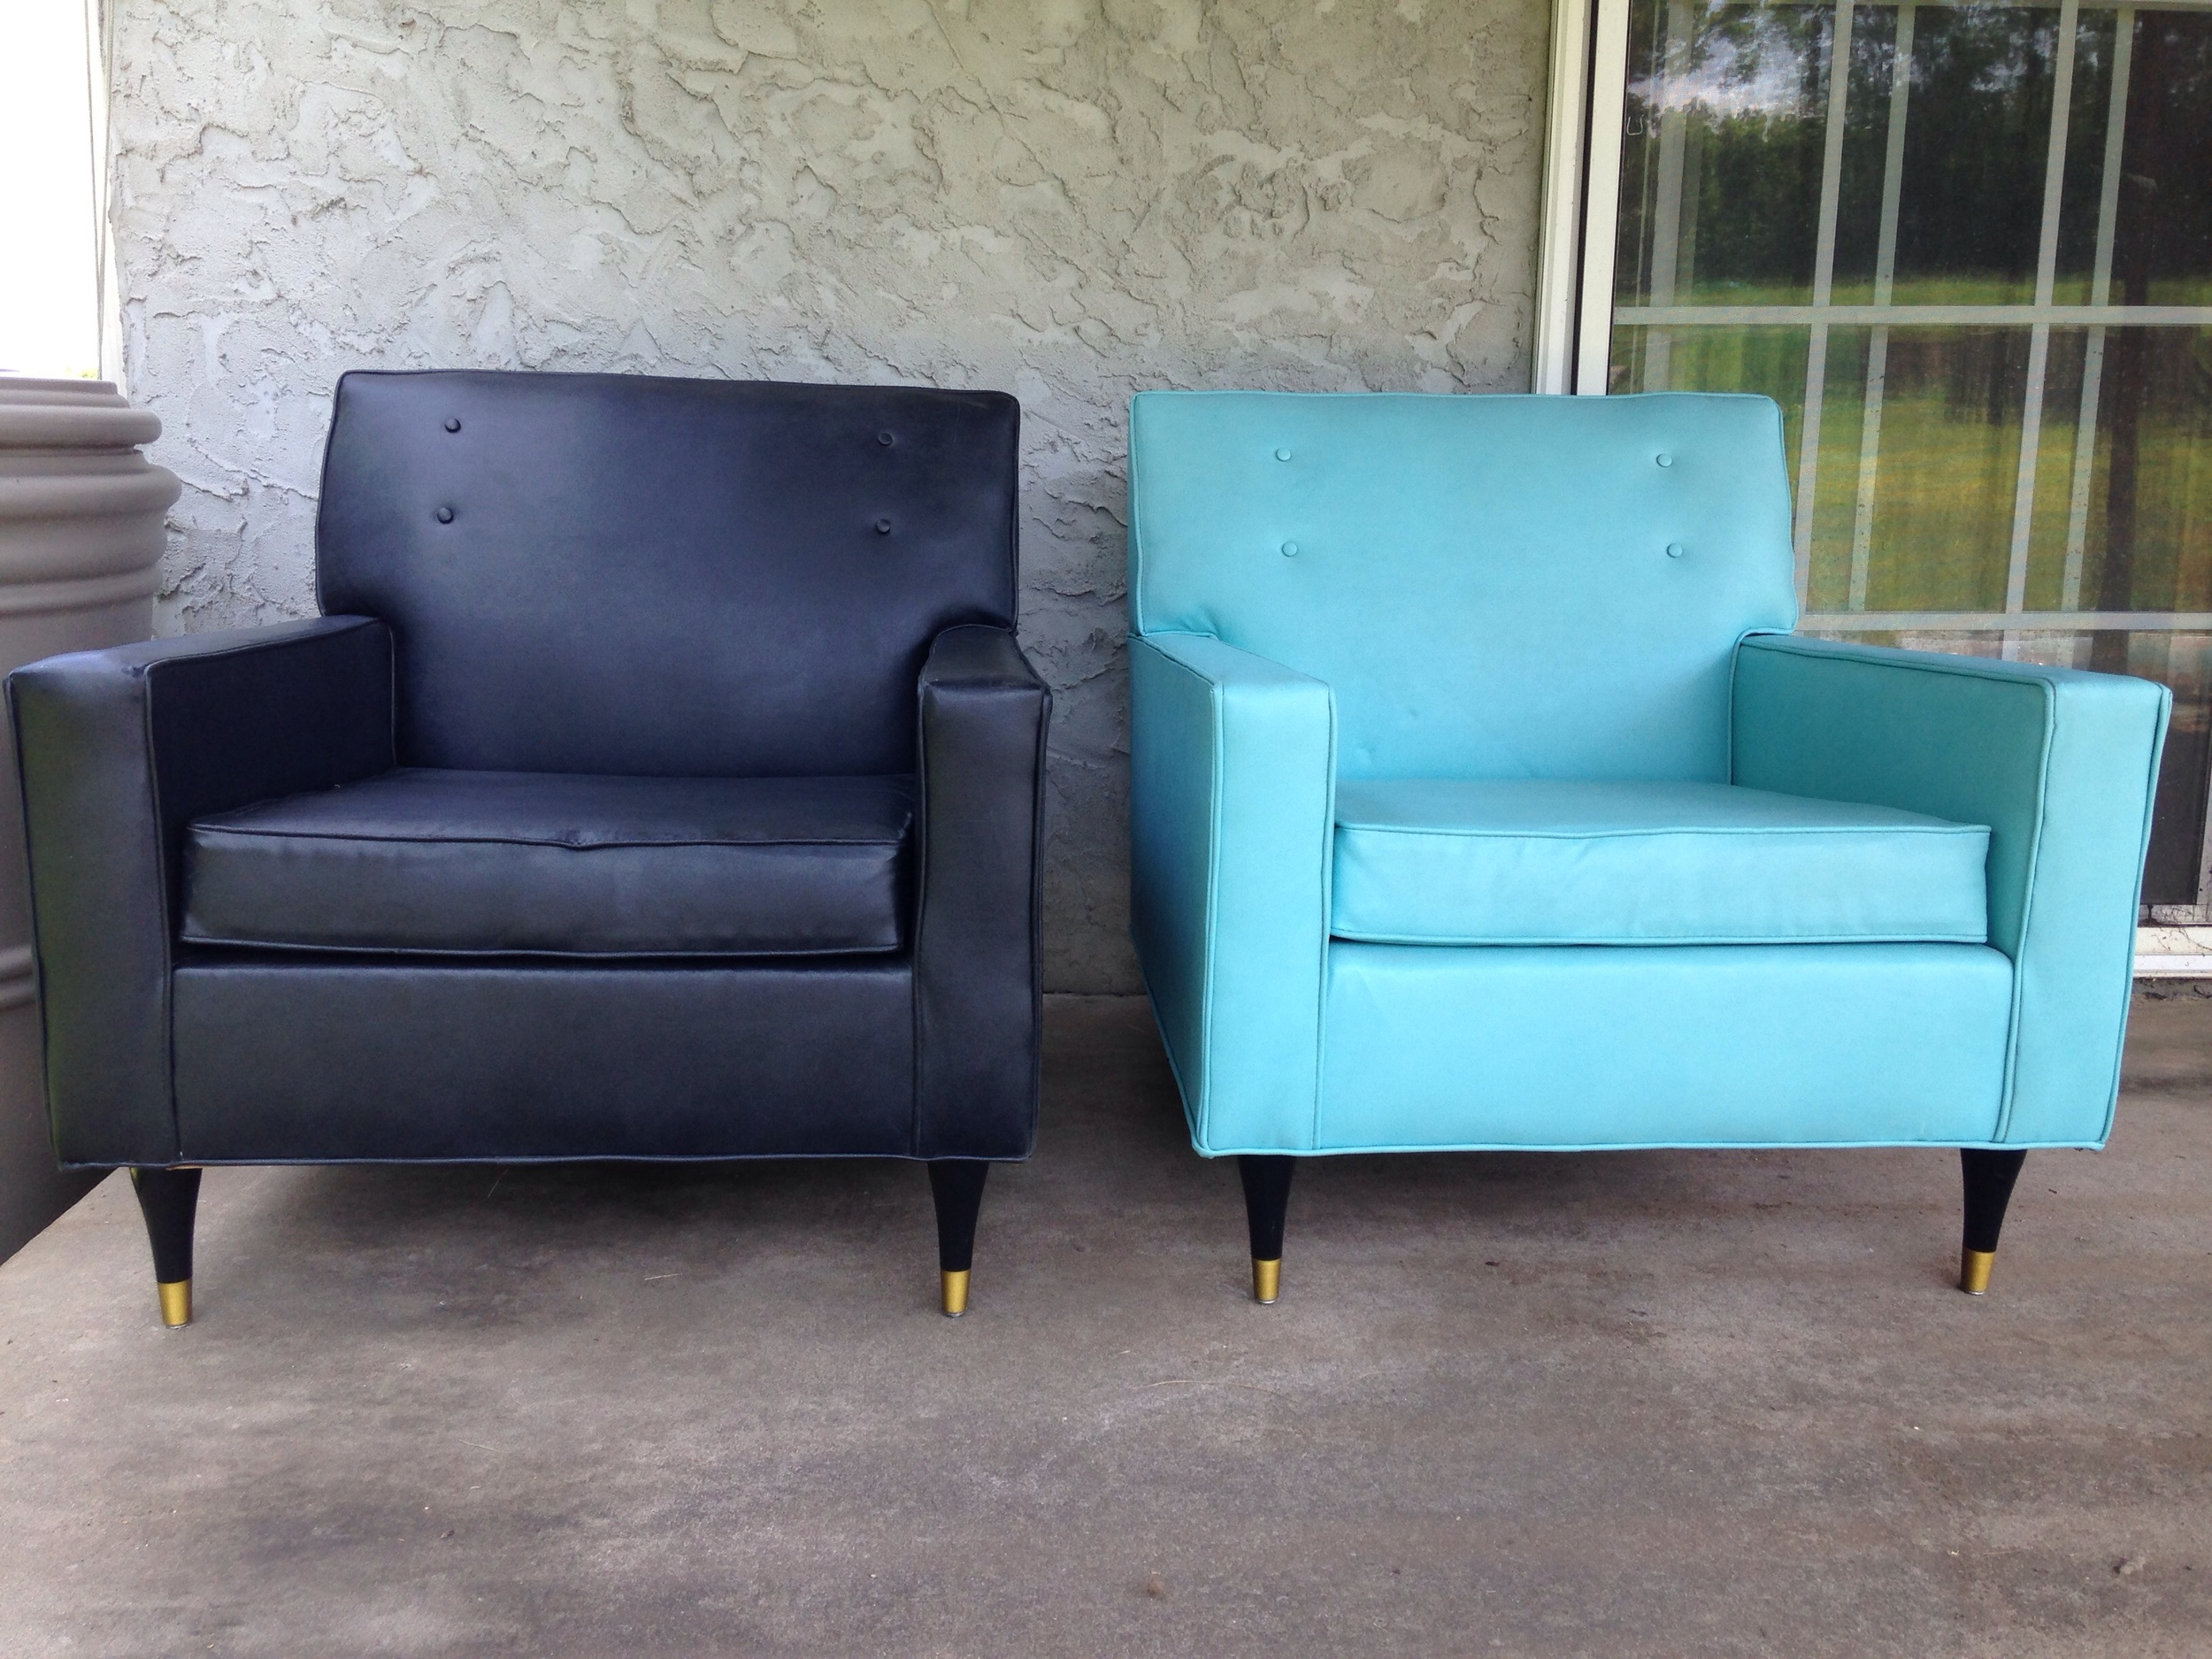 Pair of club chairs now available on etsy for regional buyers, chairish for national shipping. See also the 2 PC settee couch and make an instant Aqua living room! 😍